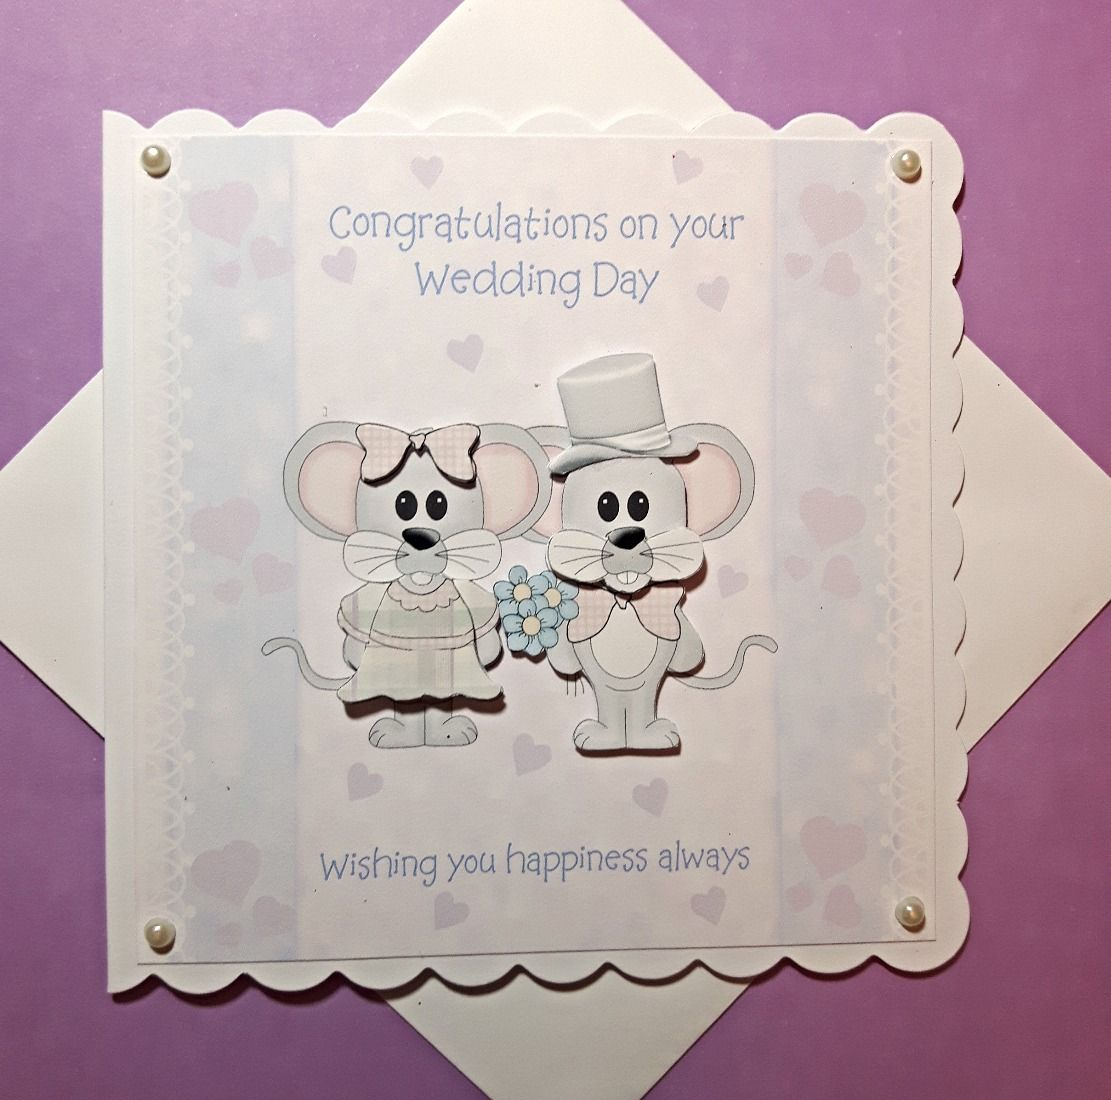 Wedding Mice Congratulations on your wedding day, Cards